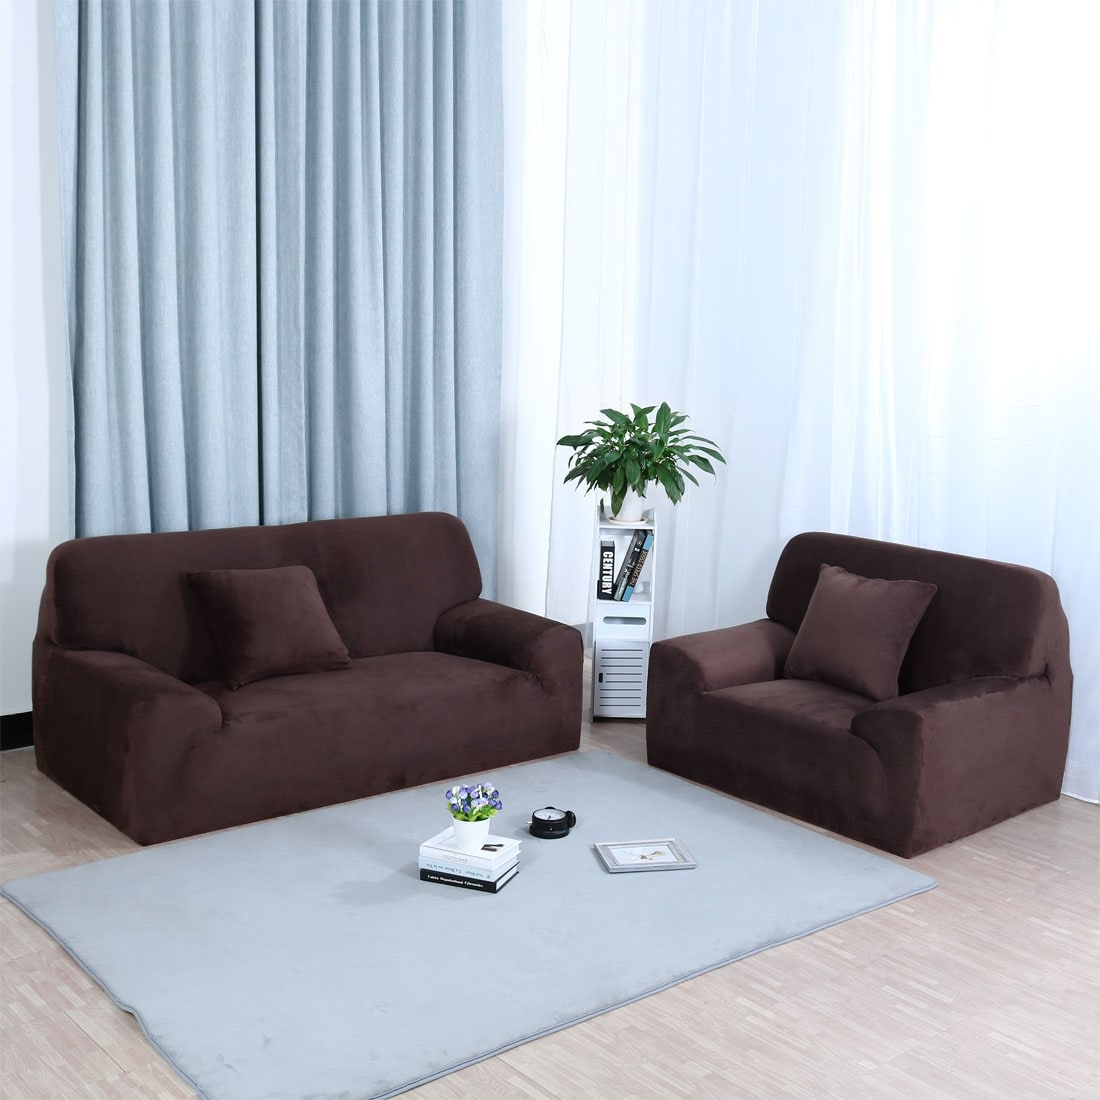 Home 1 2 3 4 Seats Stretch Flannel Sofa Cover Loveseat Slipcovers